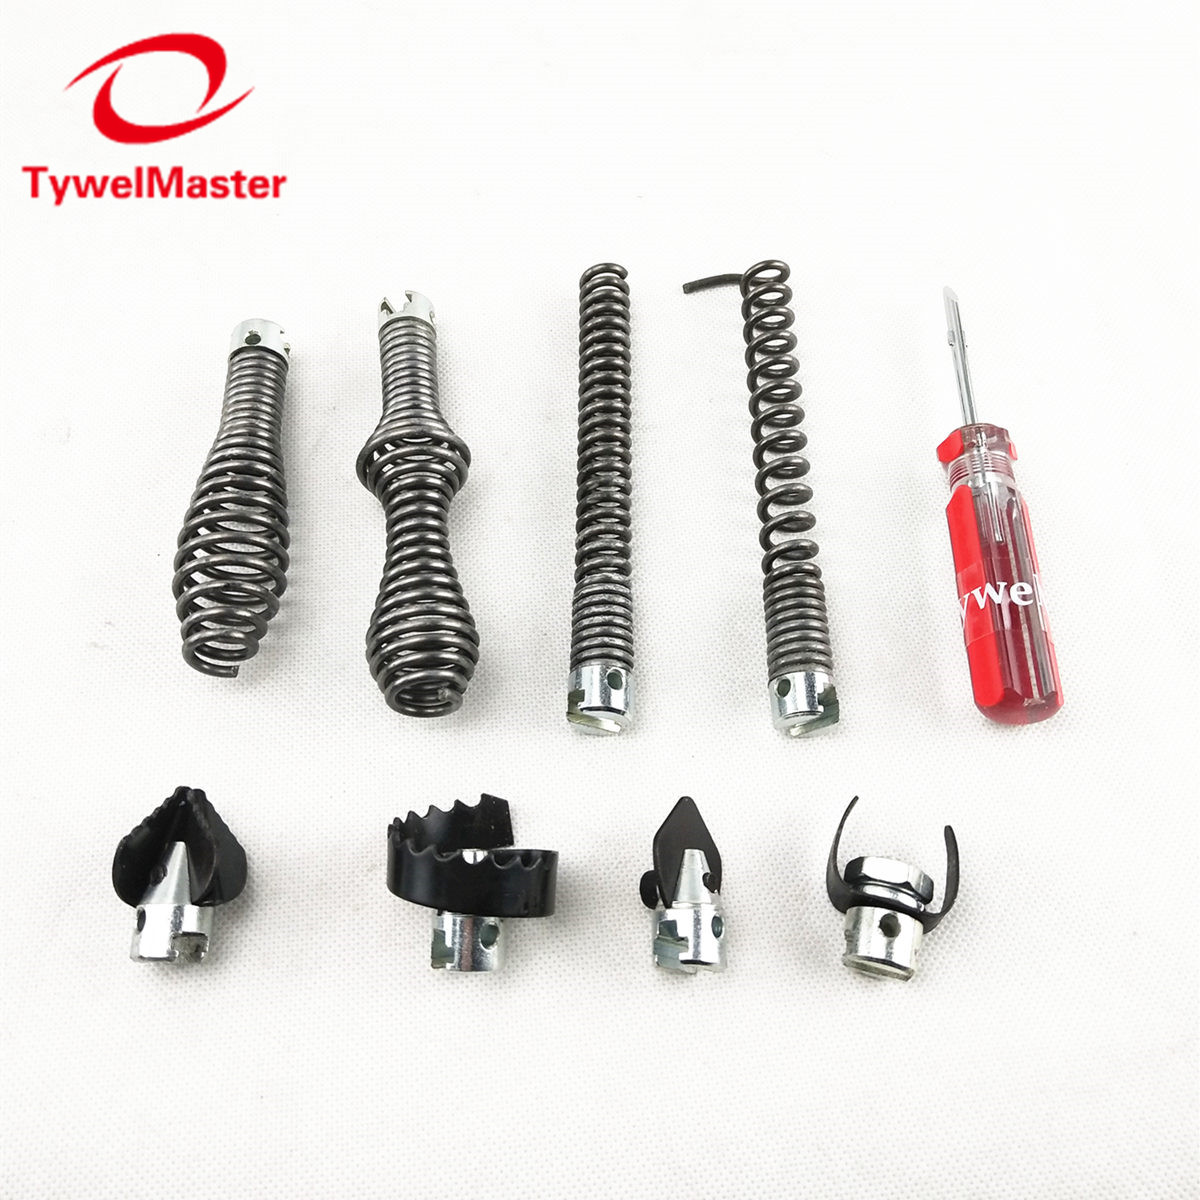 Tools : Sewer Snake Machine Accessories Soft Shaft 16mm 8pcs PK Straight Bulb Restrieving Auger Blade Grease Sawtooth Cutter Pipe Clean